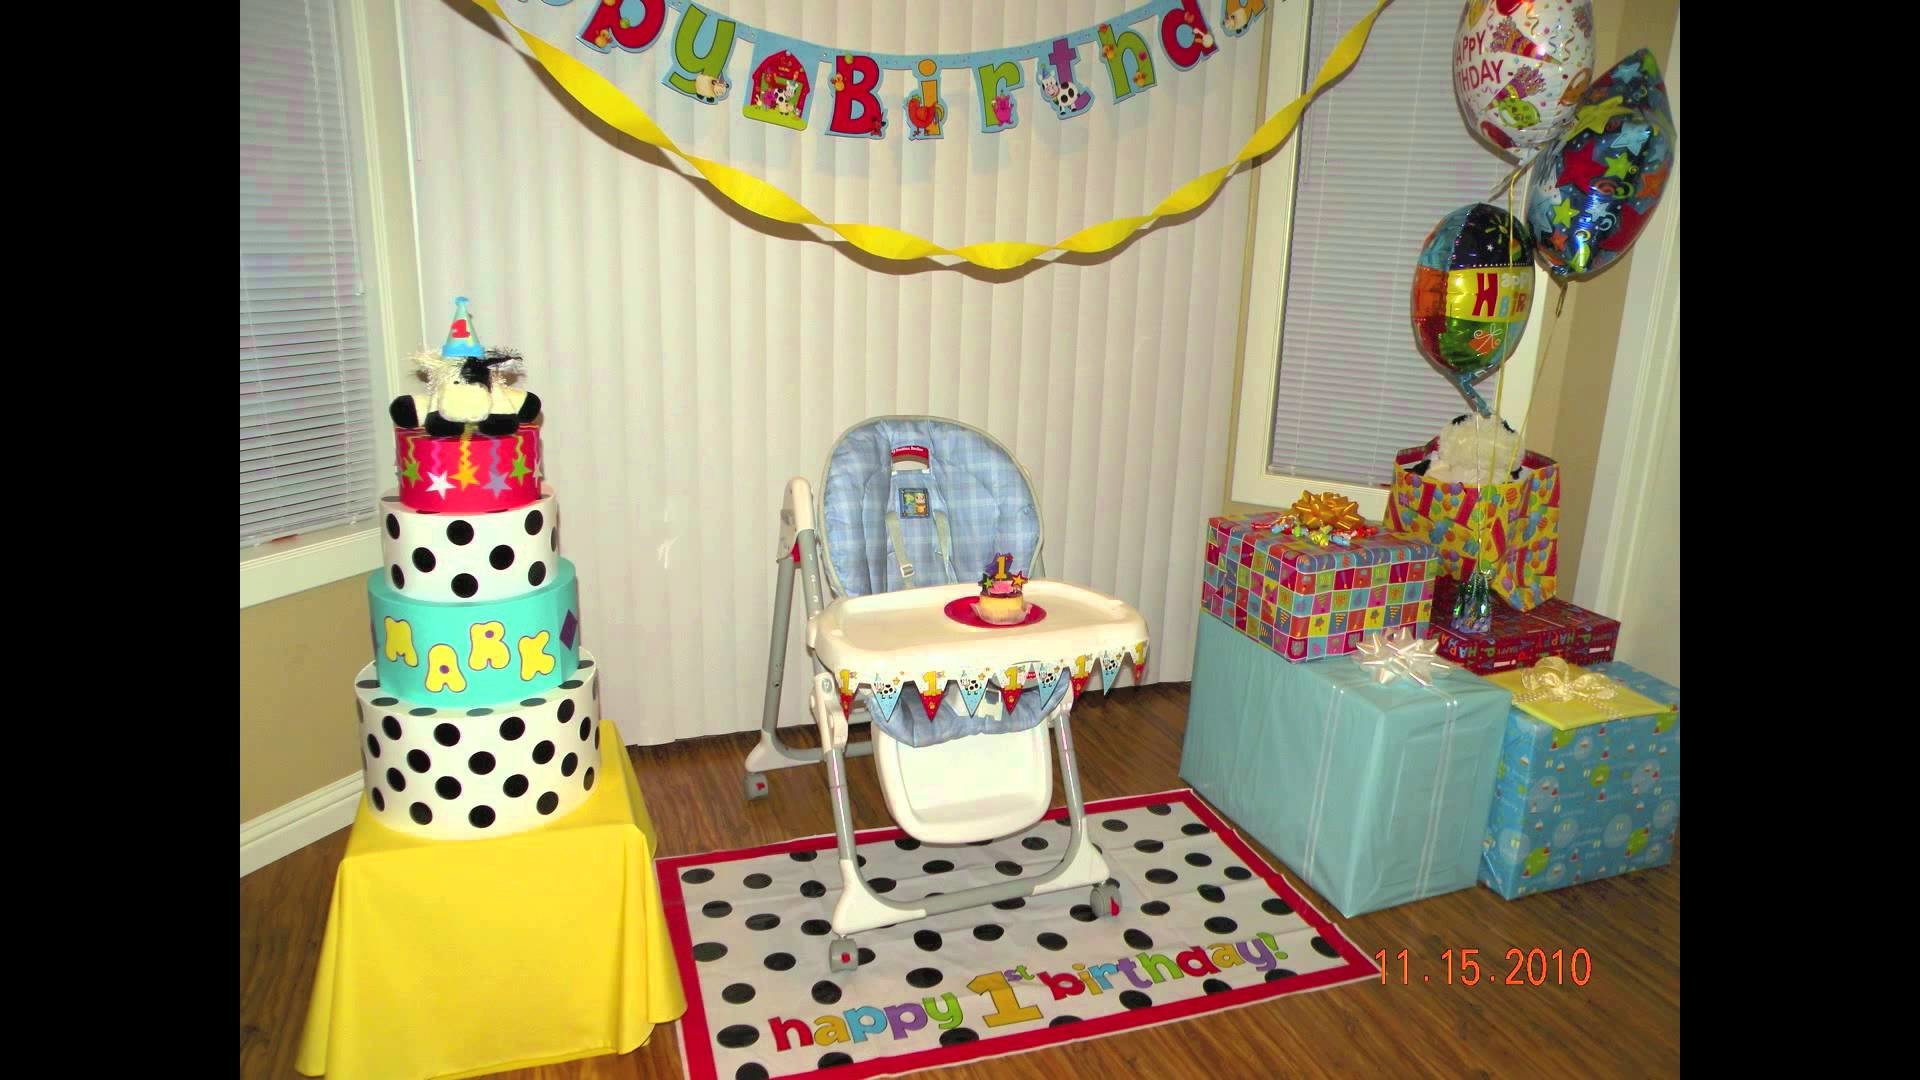 Baby birthday party decoration ideas.